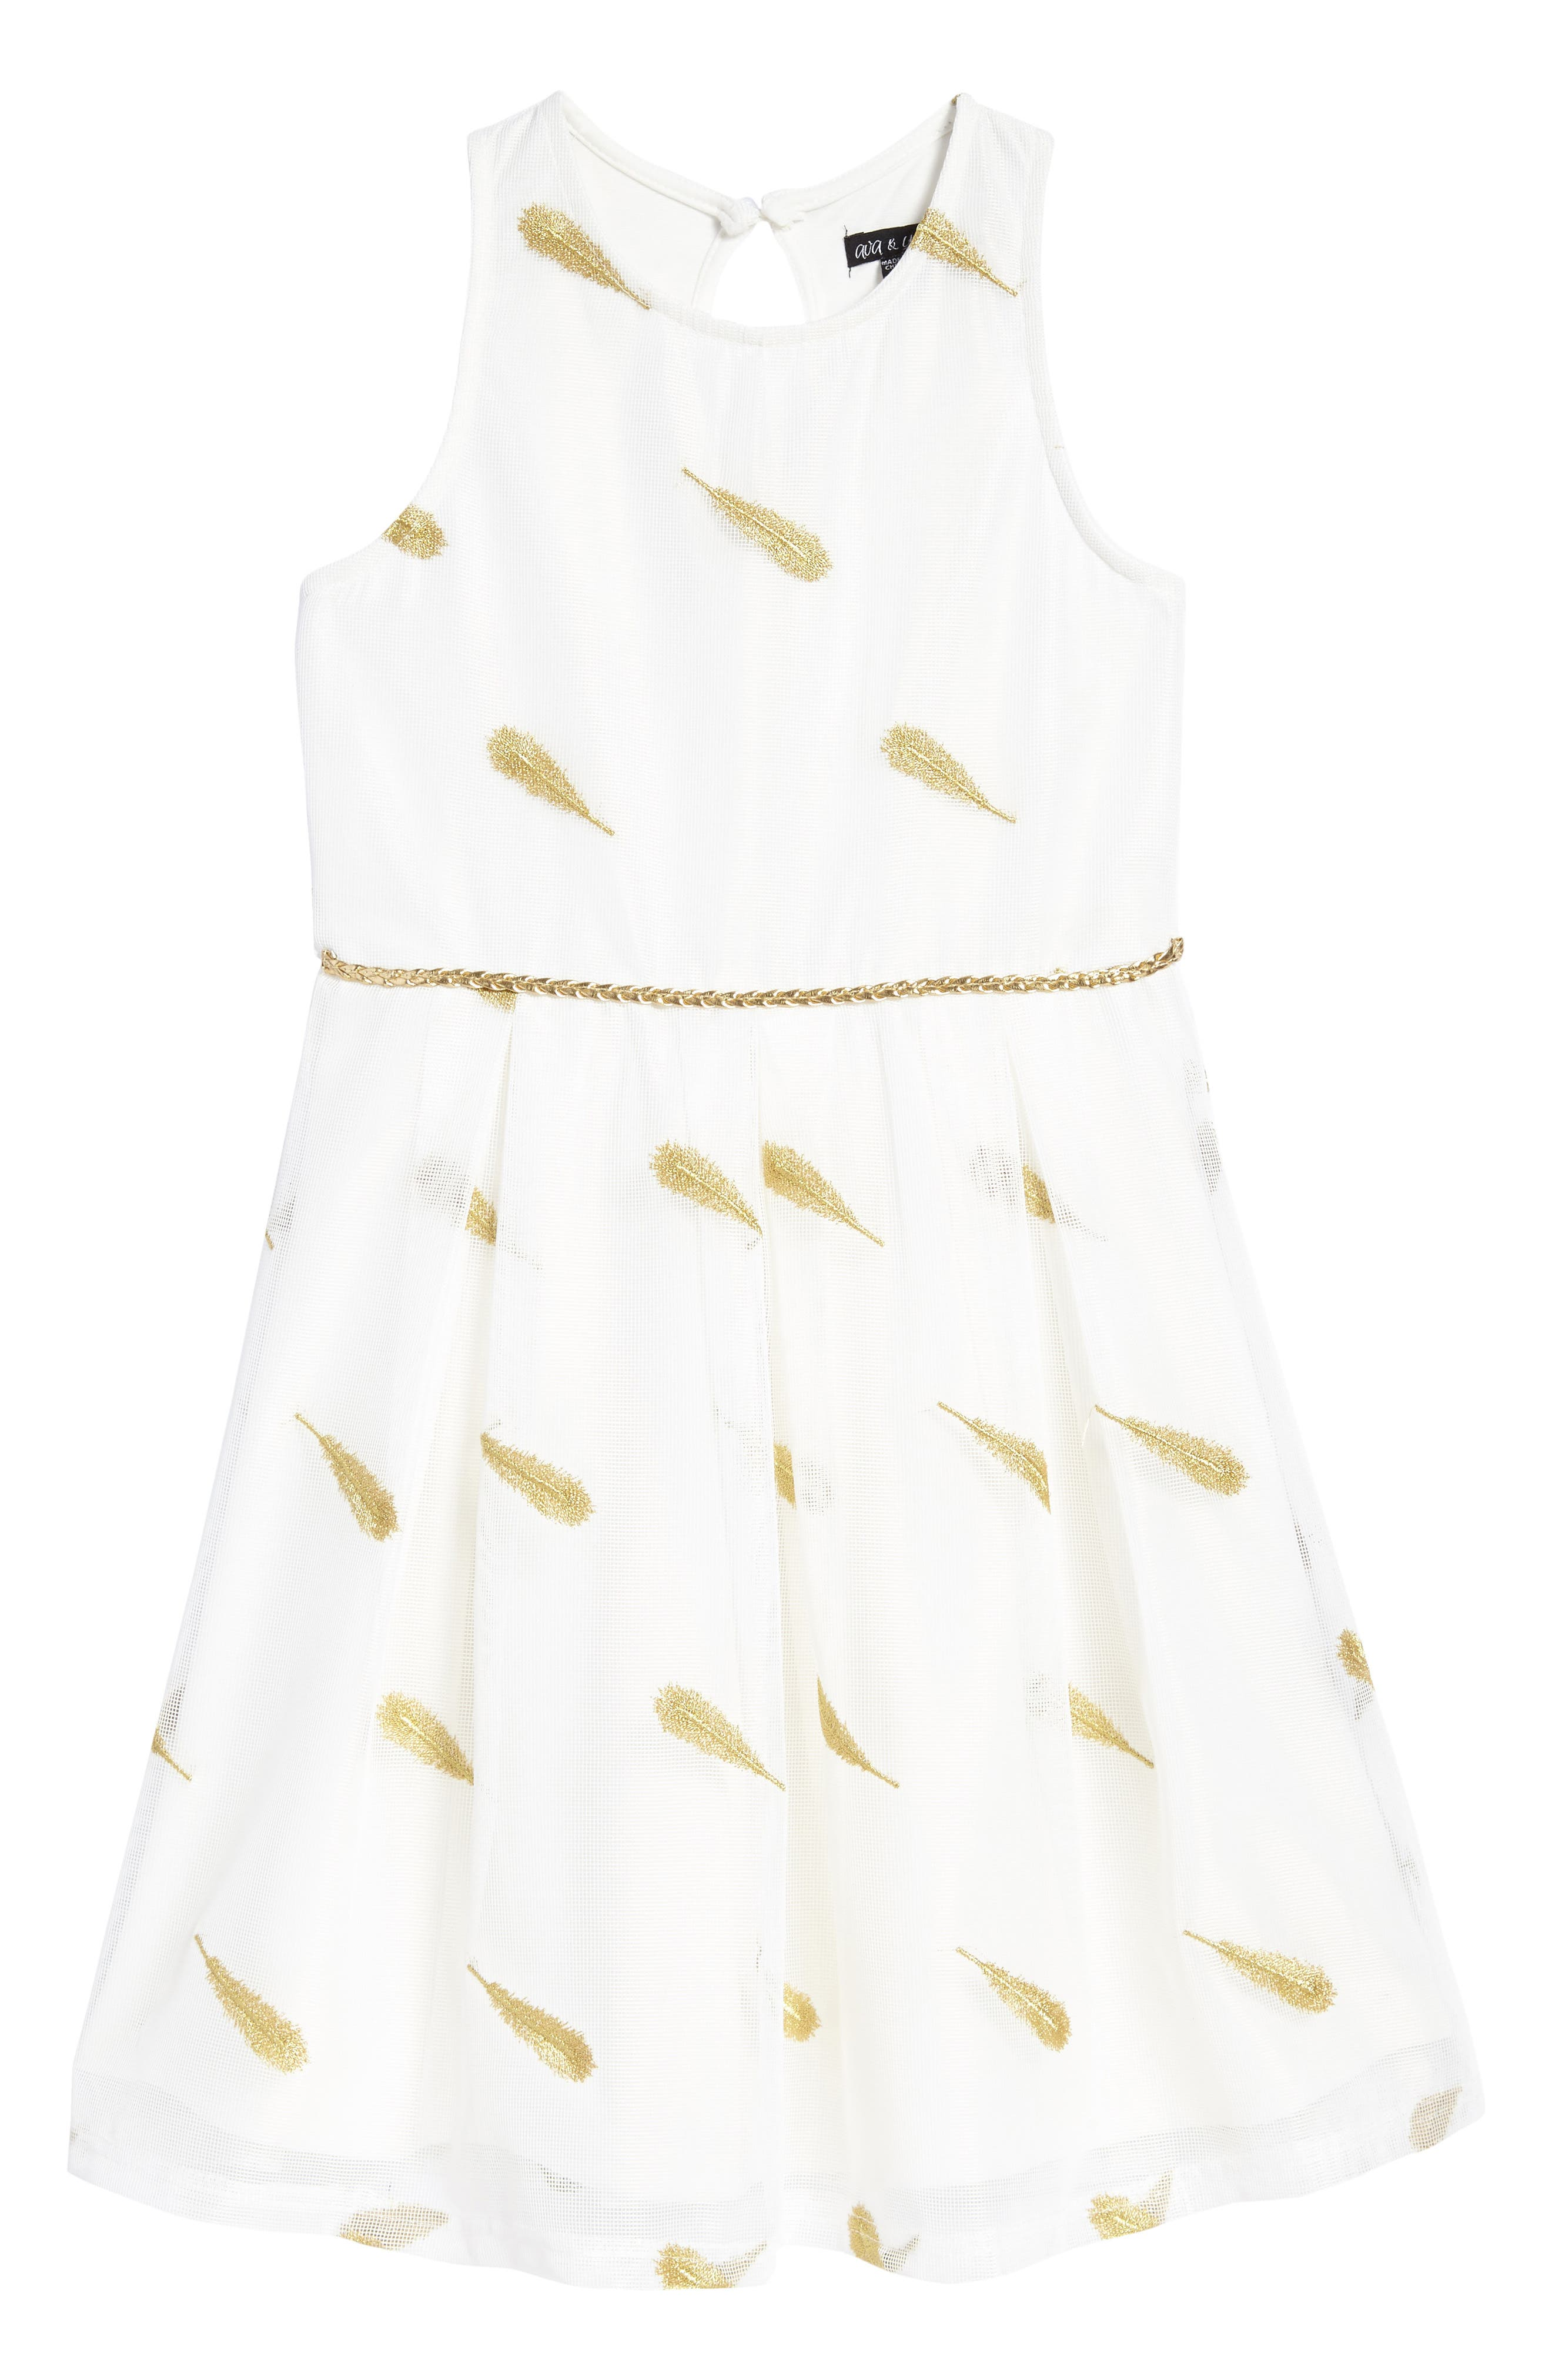 Feather Embroidered Dress,                         Main,                         color, White/ Gold